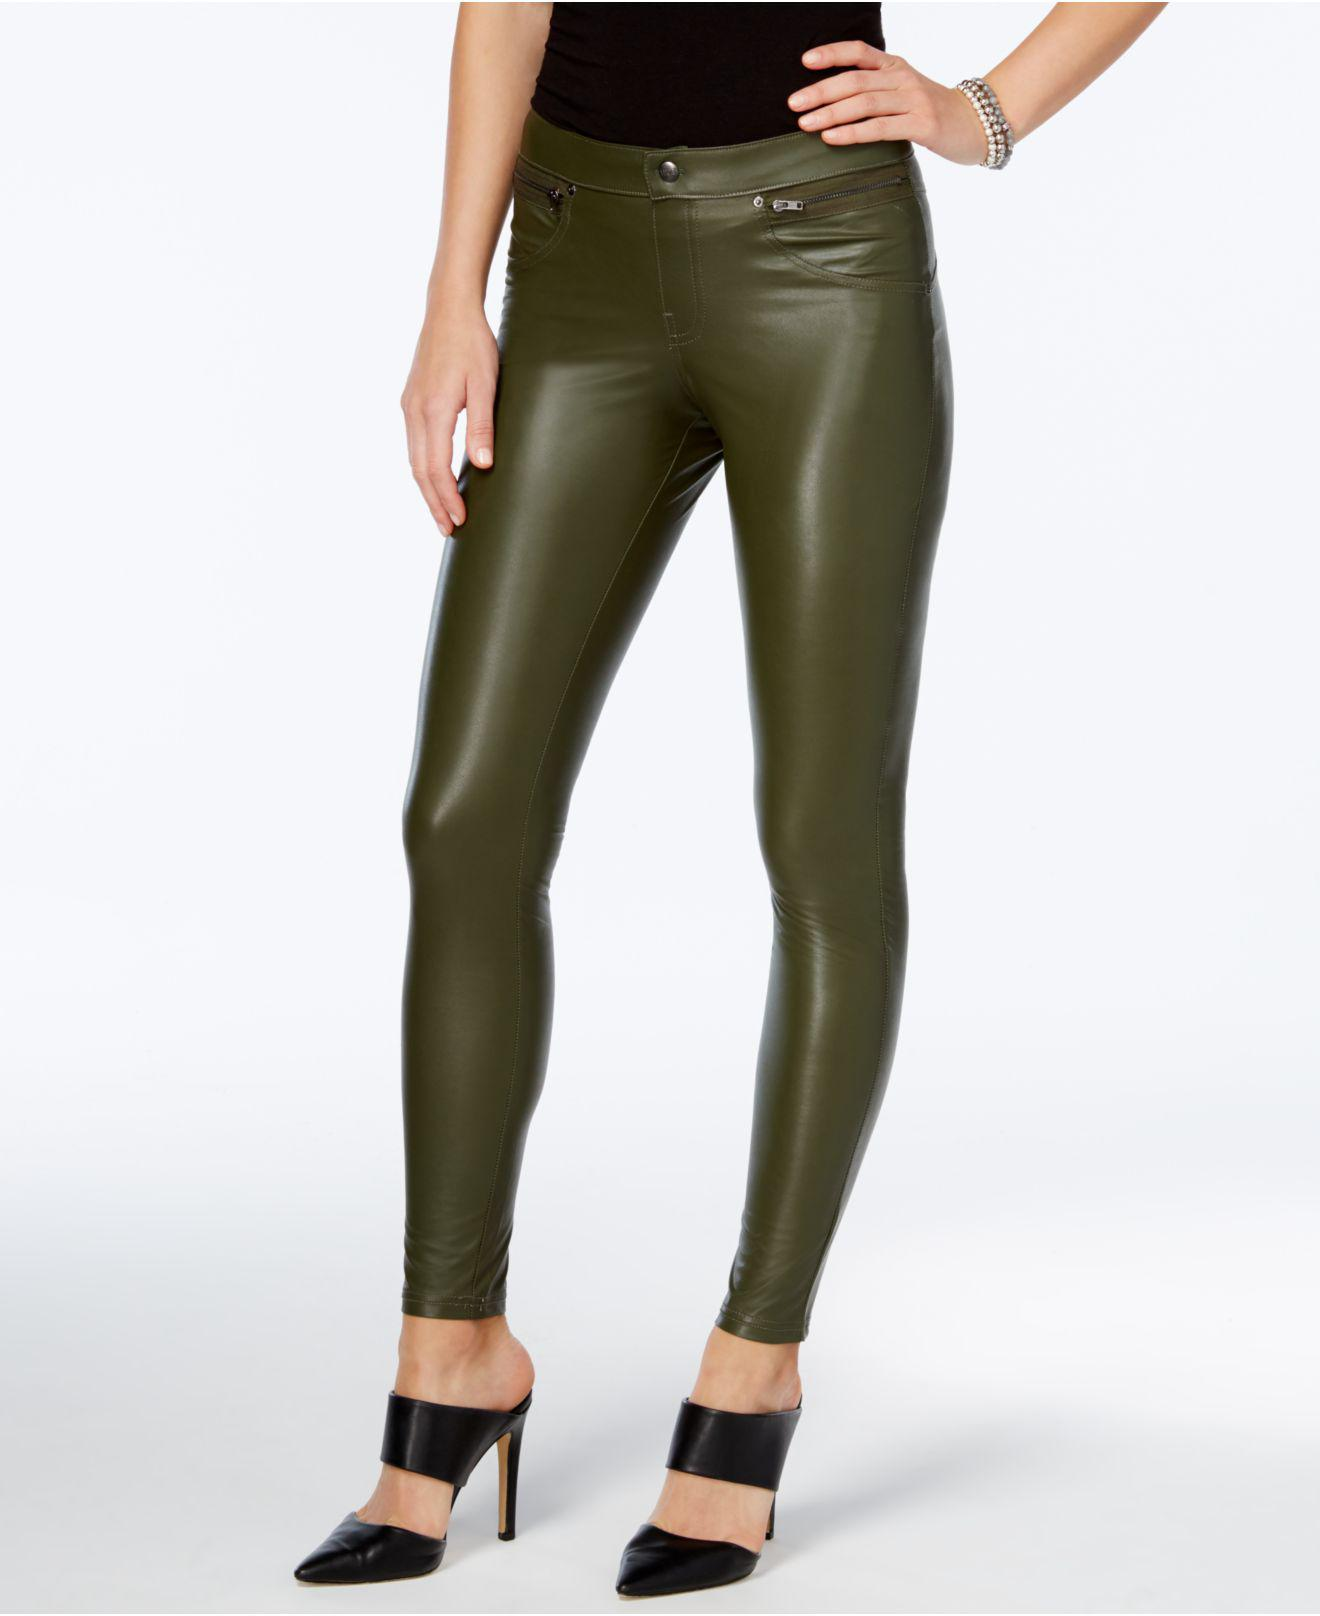 36769b5234443 Gallery. Previously sold at: Macy's · Women's Faux Leather Pants ...